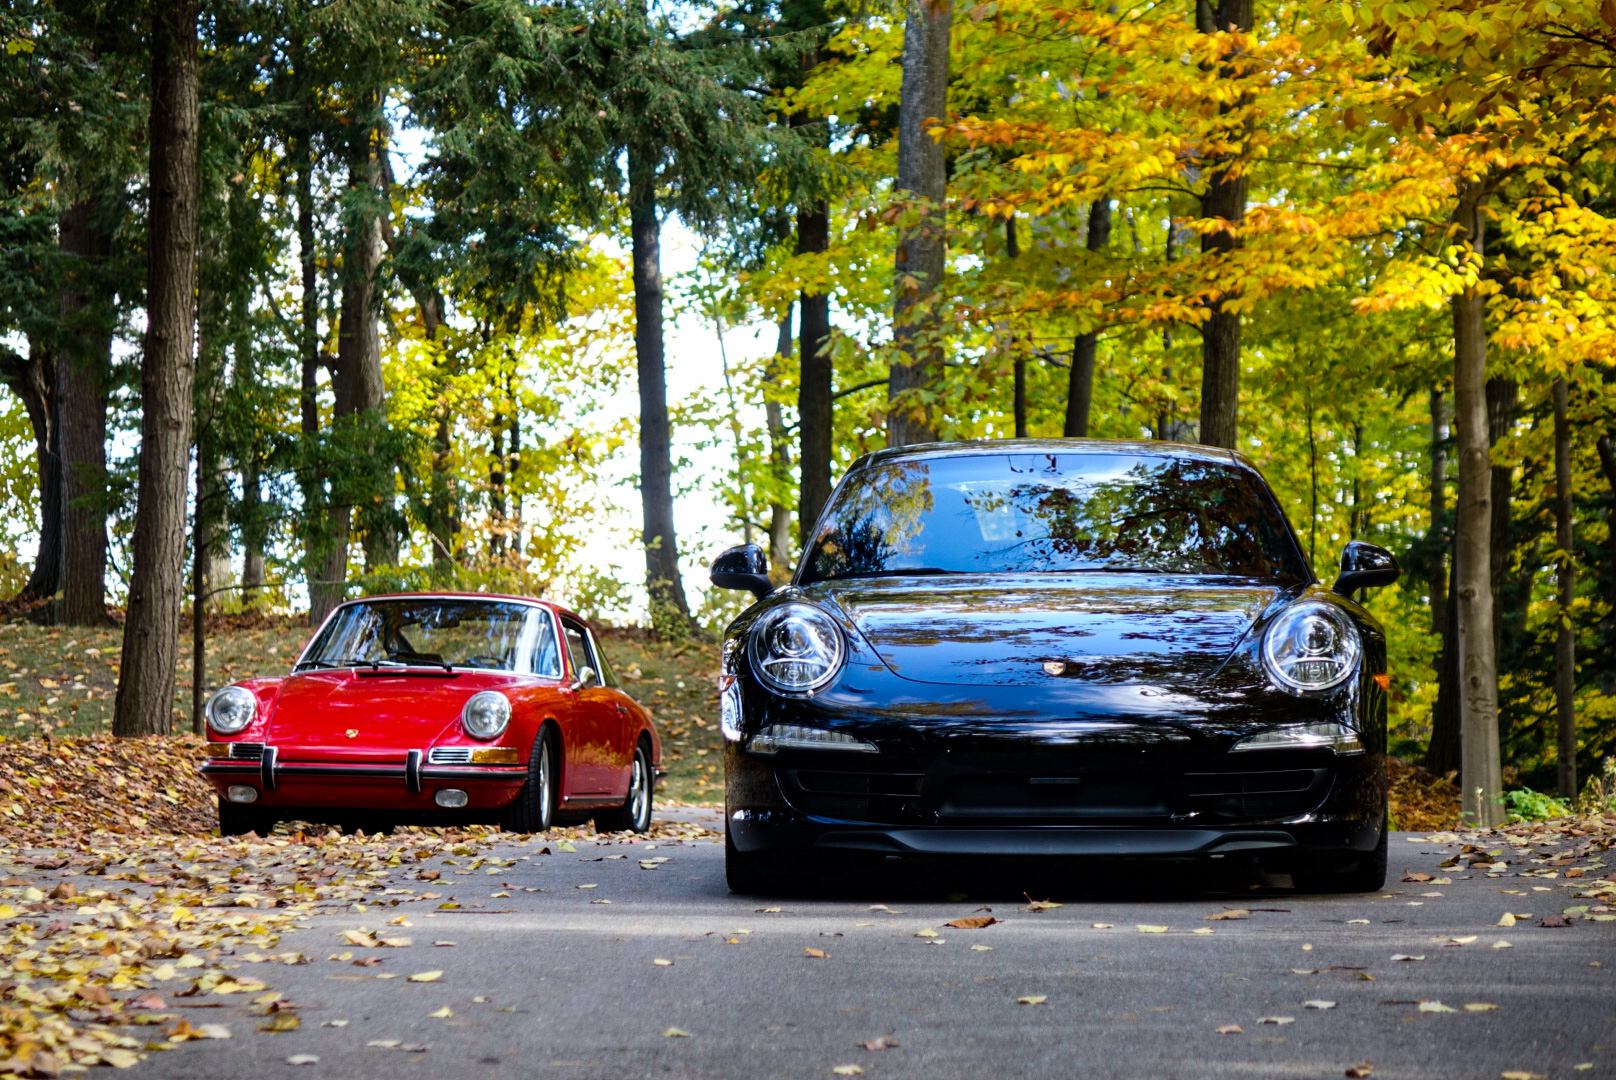 1967 Porsche 911S and 2013 Porsche 911 Carrera 4S front